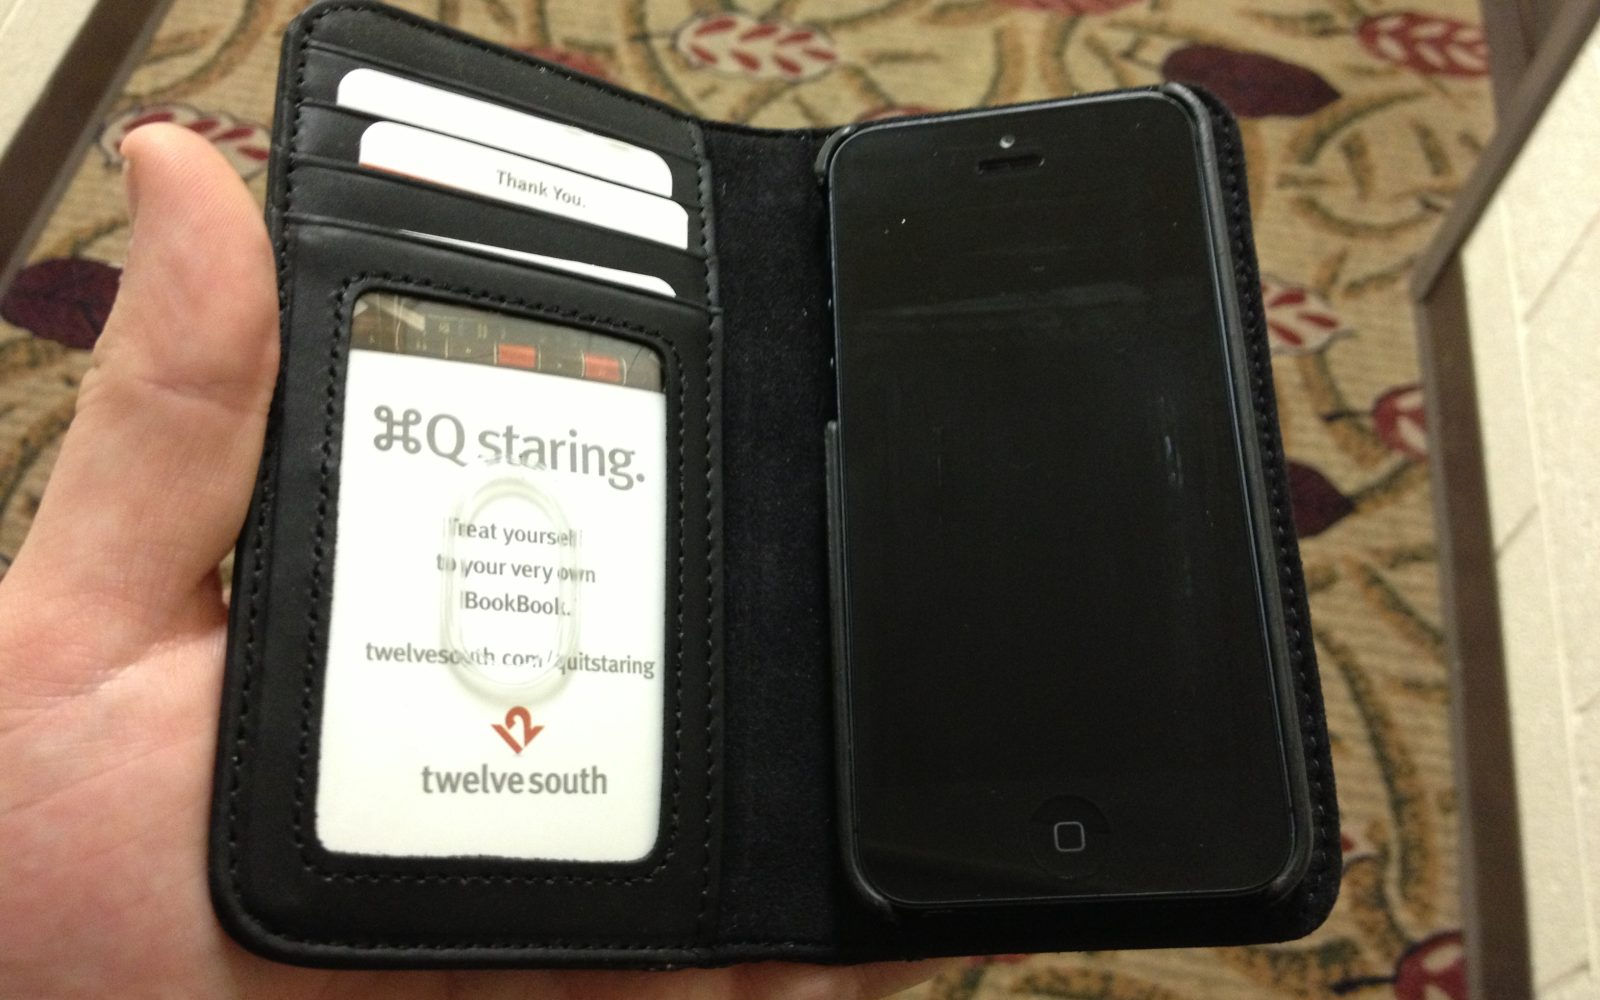 Review  Twelve South s BookBook case for iPhone 5 - 9to5Mac 967ba188399cc